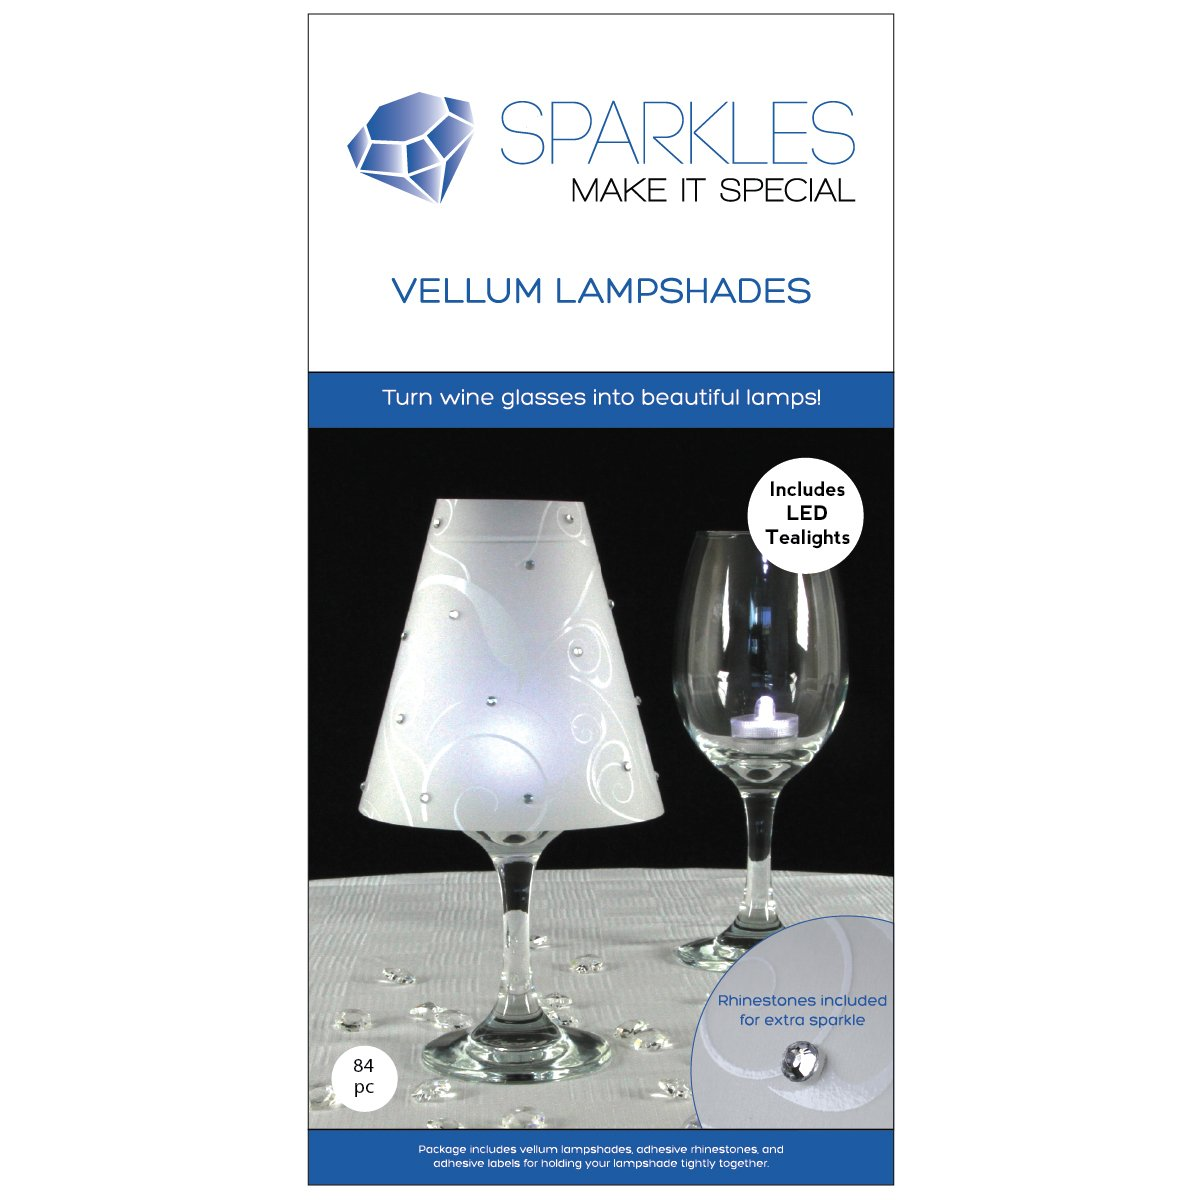 Sparkles Make It Special 84 pc Wine Glass Lamp Shades with Rhinestones and LED Tea Lights - Wedding Table Decoration - White Vellum Swirl Print by Sparkles Make It Special